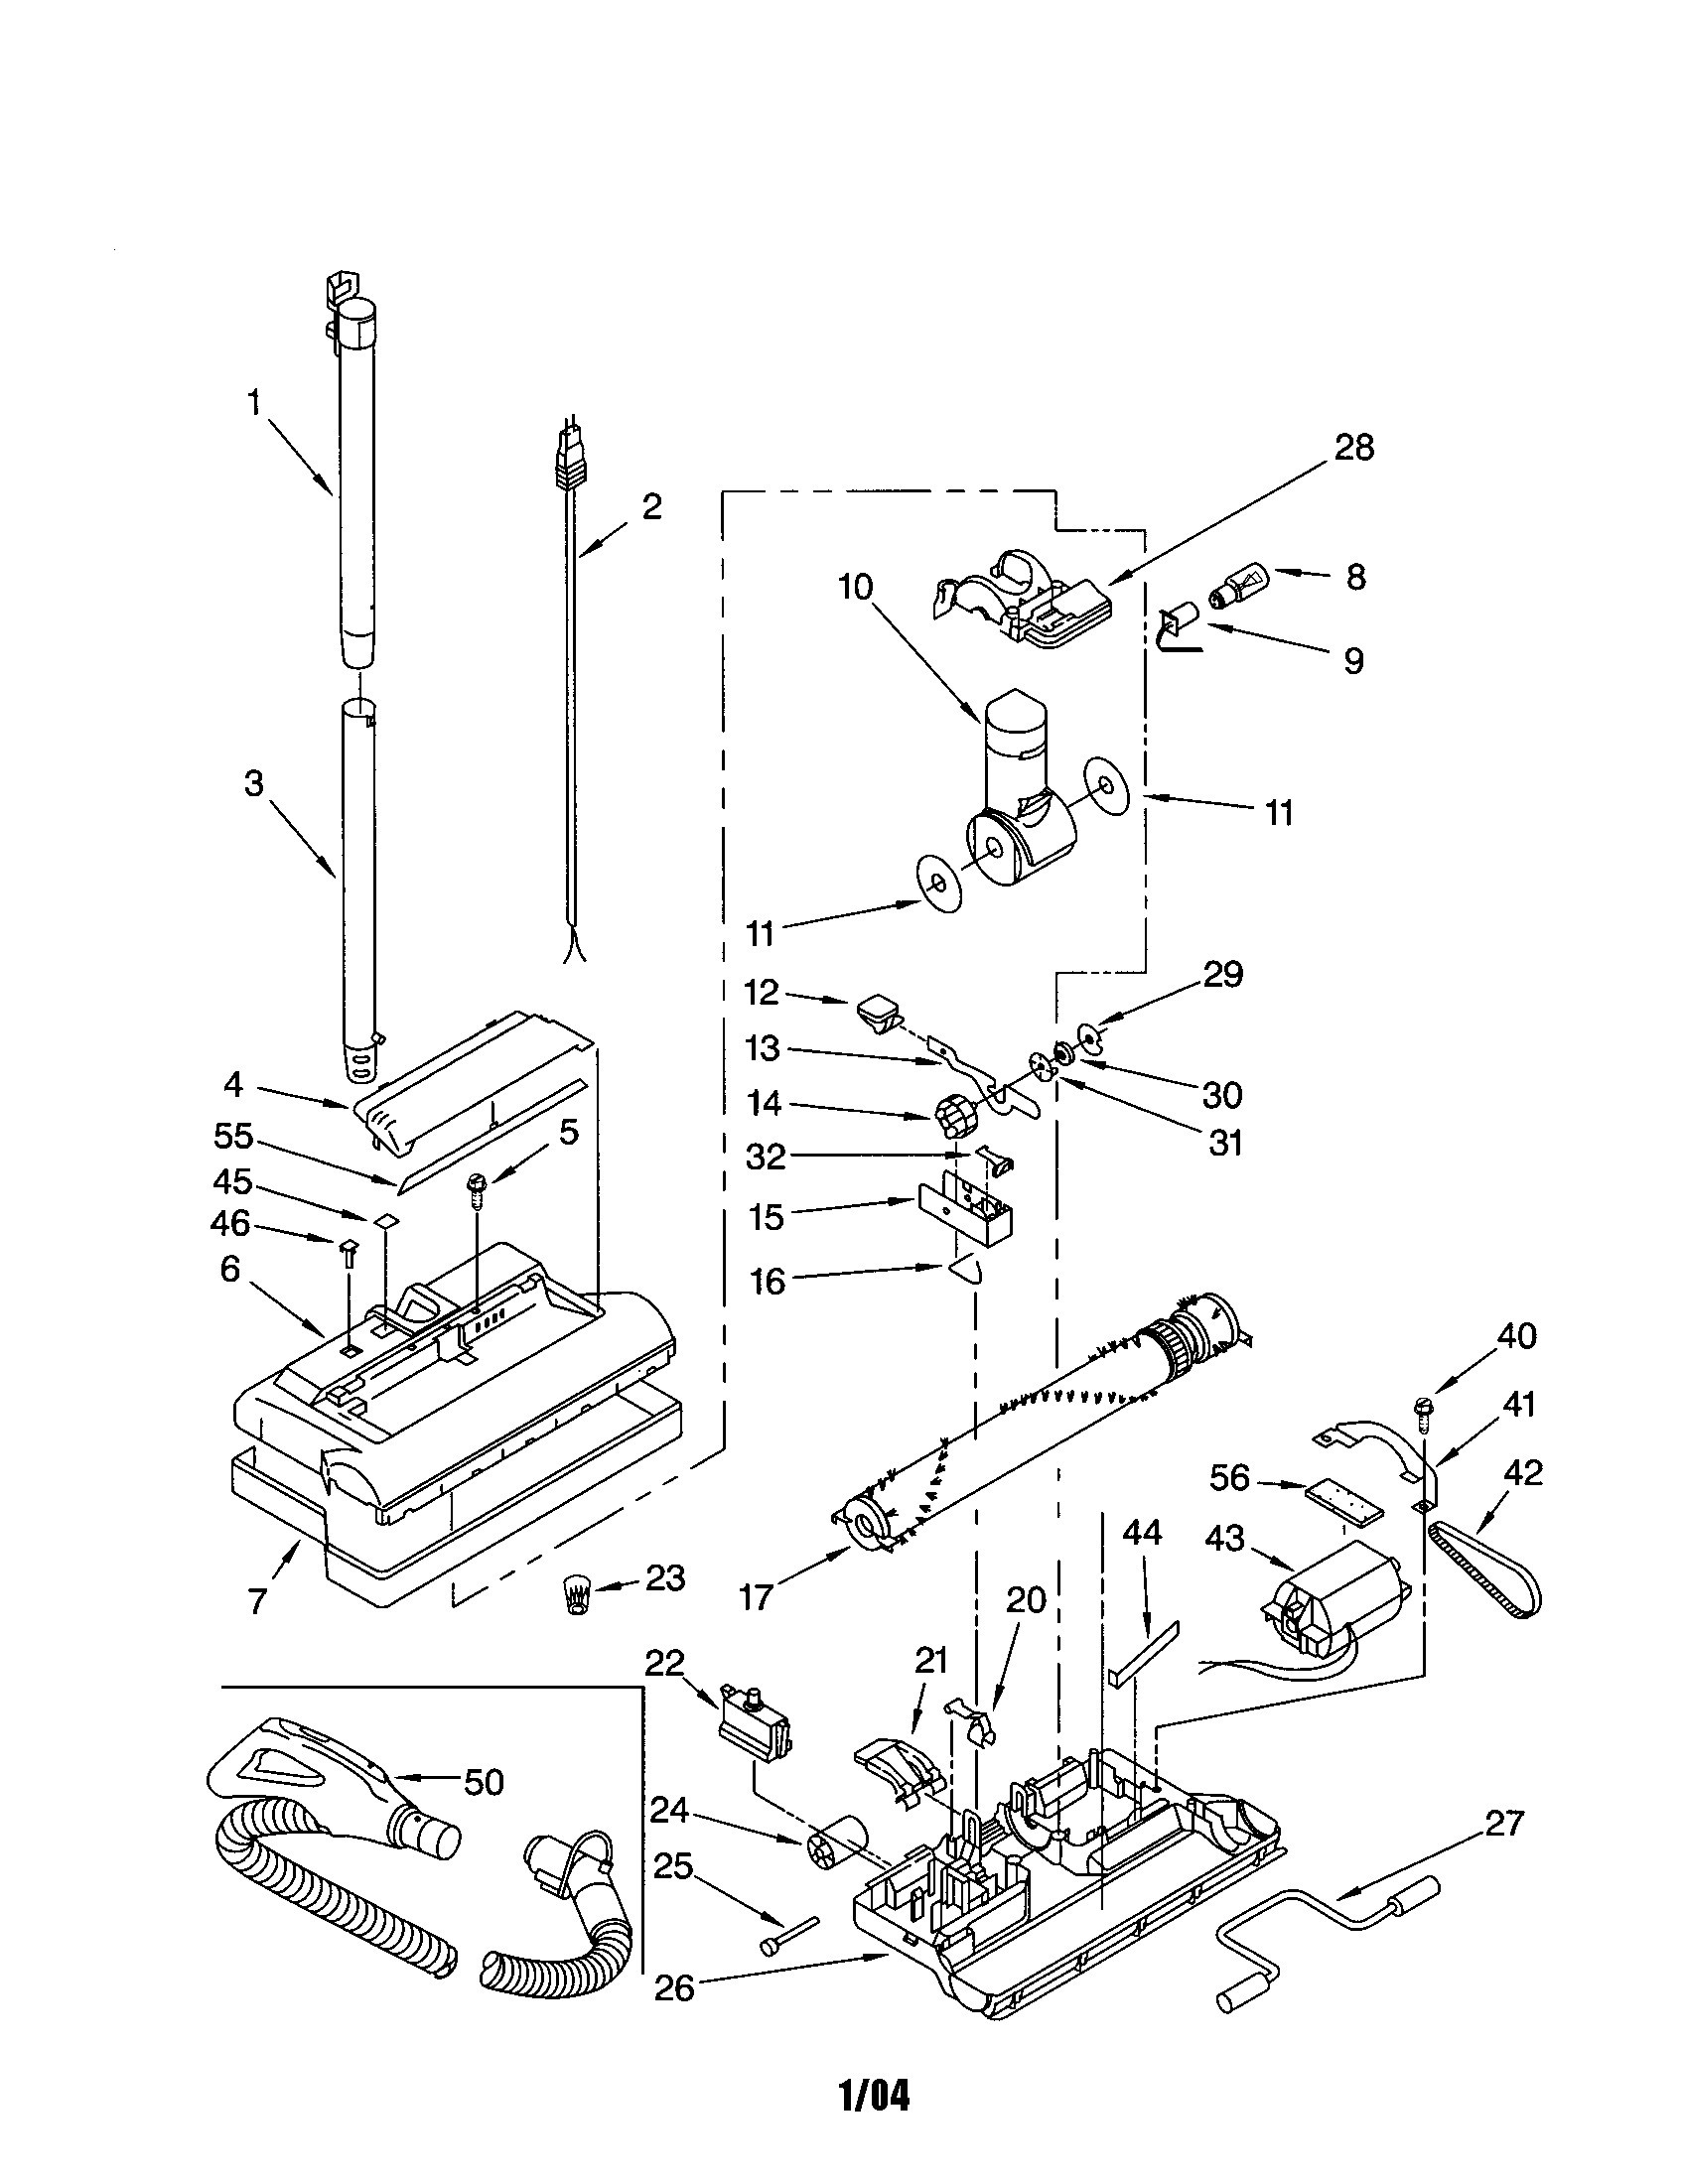 hight resolution of shop vac wiring diagram wiring library sanitaire vacuum parts diagram kenmore vacuum wiring diagram wire center